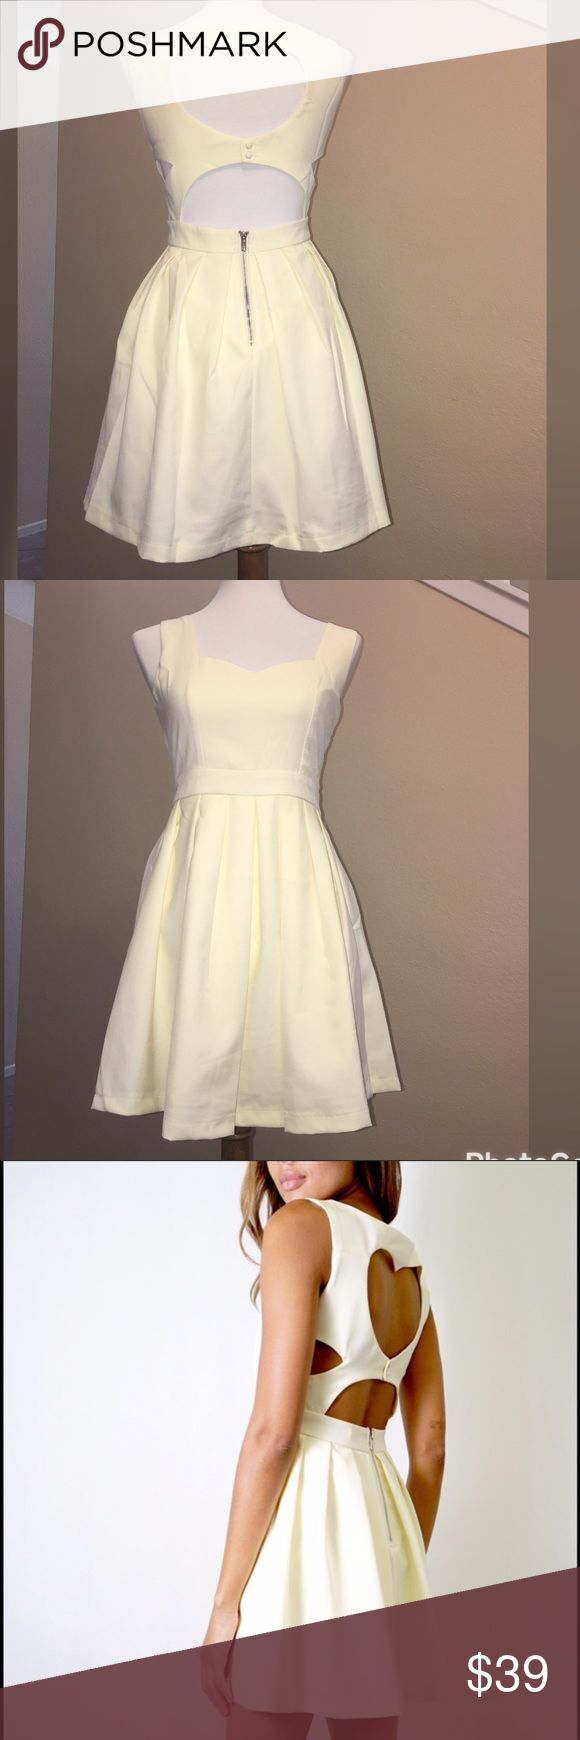 "🔥Ivory classic heart dress 👗 Tea & Cups Ivory classic heart dress with heart cutout back and pleated skirt. 100% polyester. Model on third picture is a small: total length 30""/ across waist front: 12""/ across chest front: 16"". I have 1 small and 1 medium. New with tag. Price is final Tea n Cup Dresses Mini"